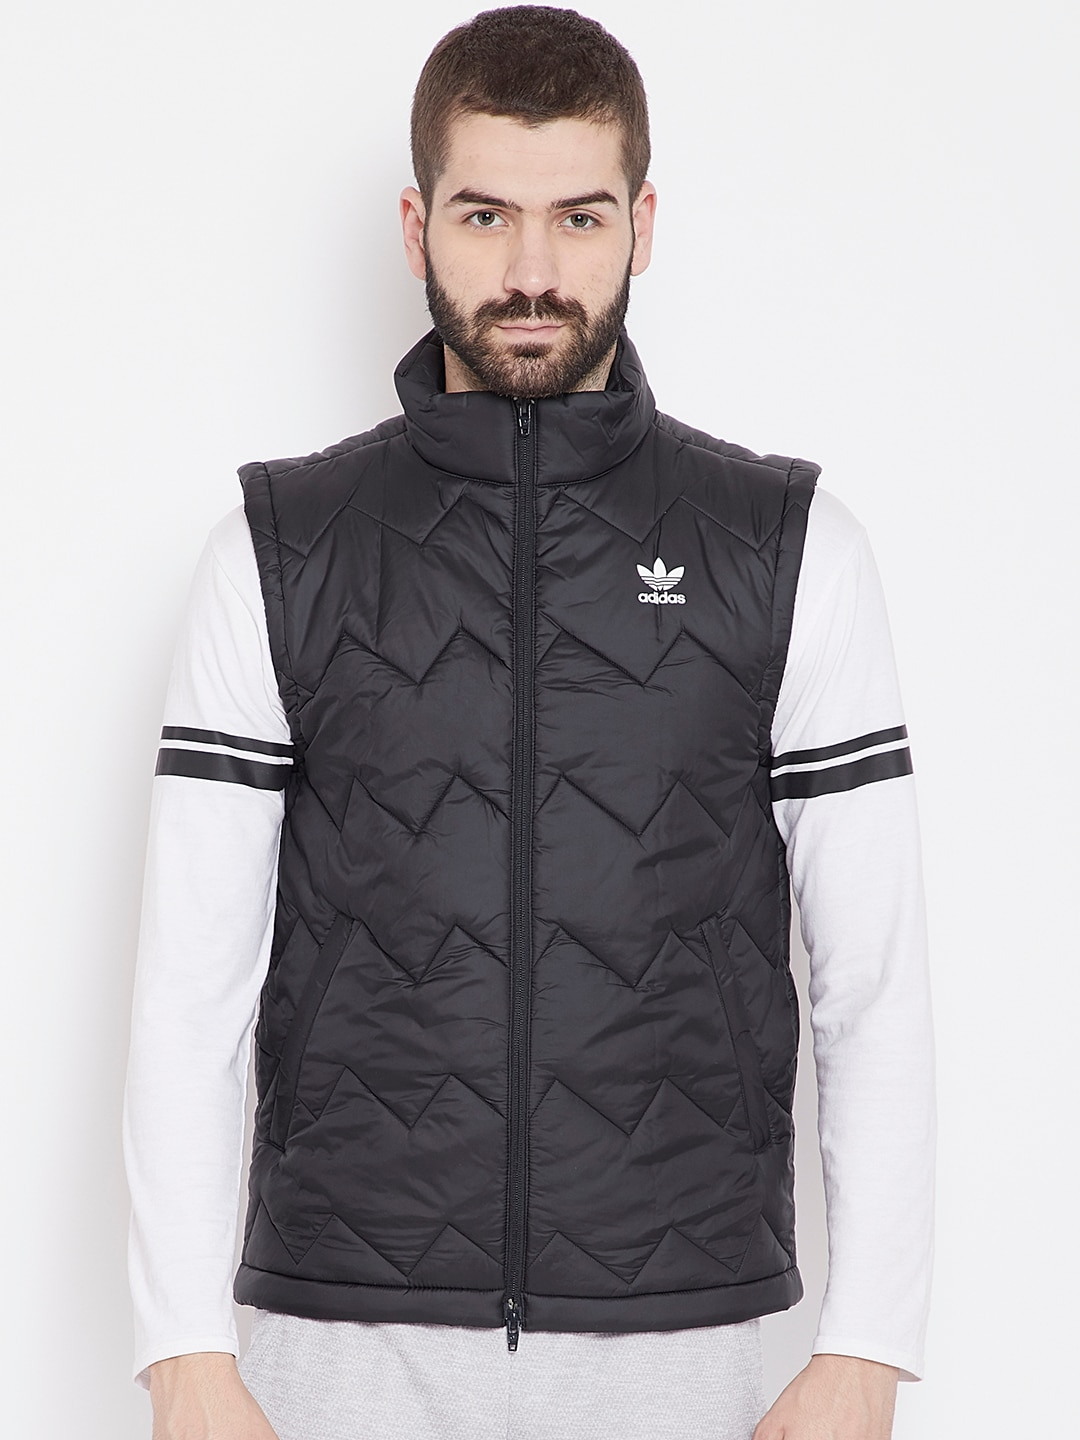 35e04e5505b6 Adidas Jacket - Buy Adidas Jackets for Men